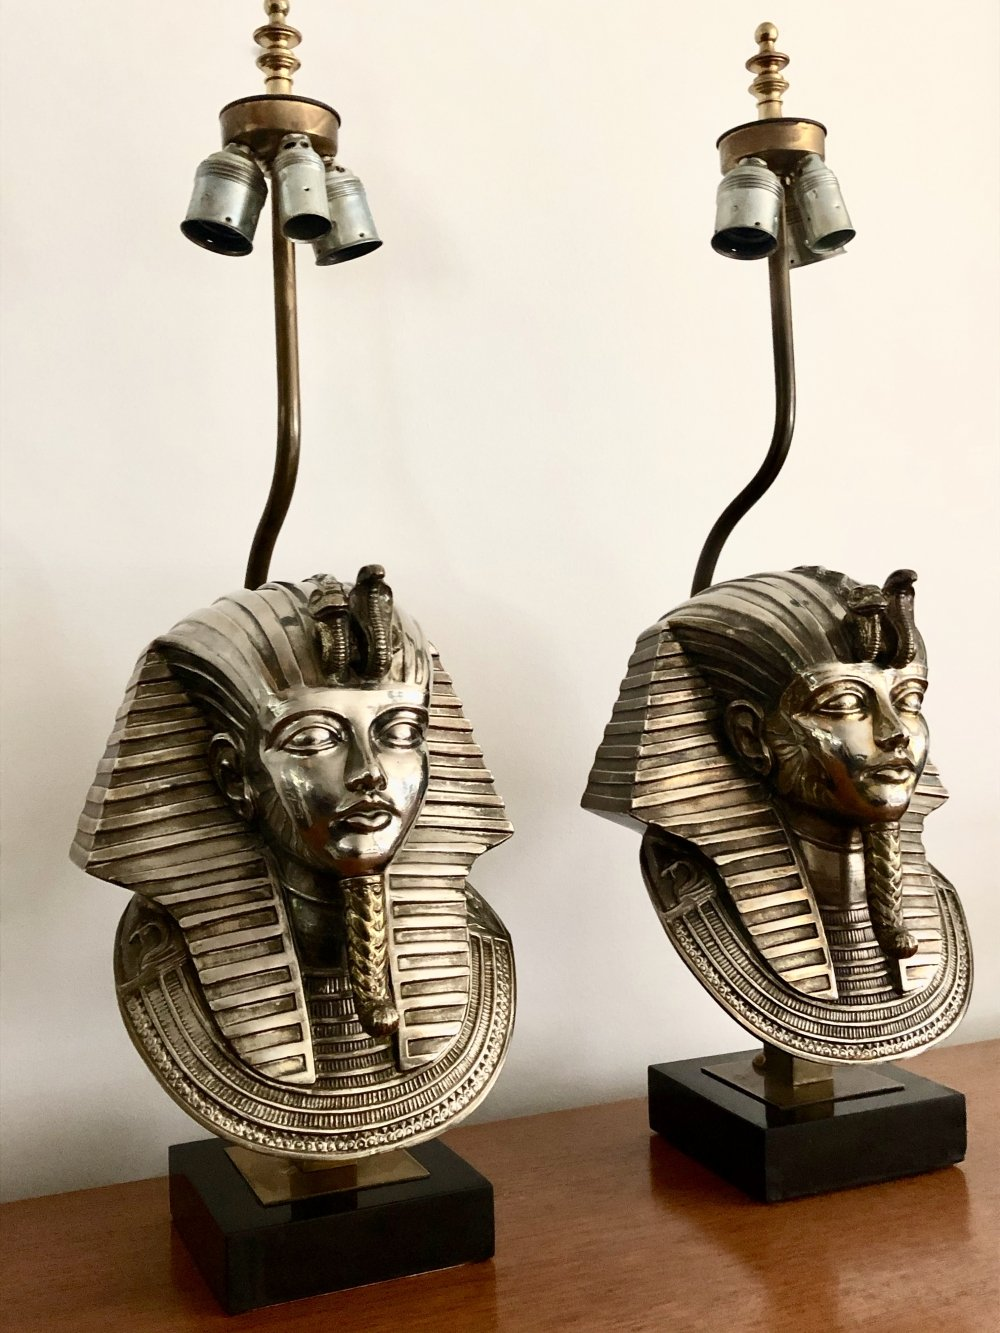 Set of 24K goldplated Pharaoh table lamps by Deknudt, 1970